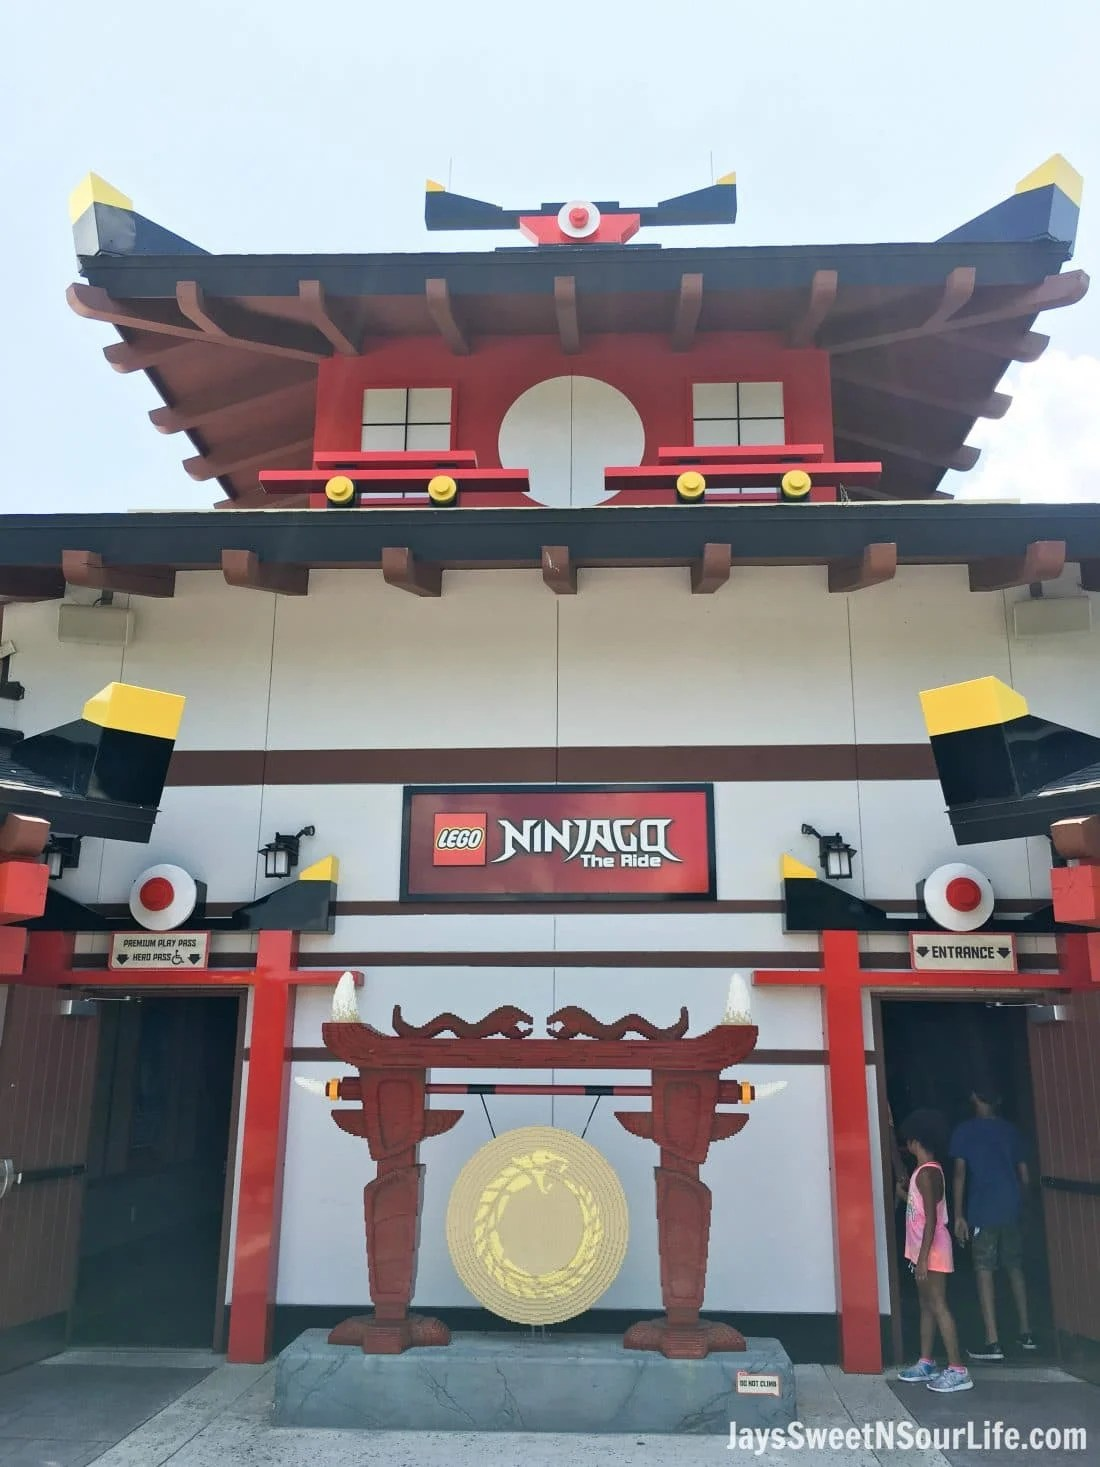 Legoland Florida Ninjago World Ride Entrance. Spend your summer building memories at Legoland in Florida. There is something for the whole family to enjoy at this wonderful Theme Park.